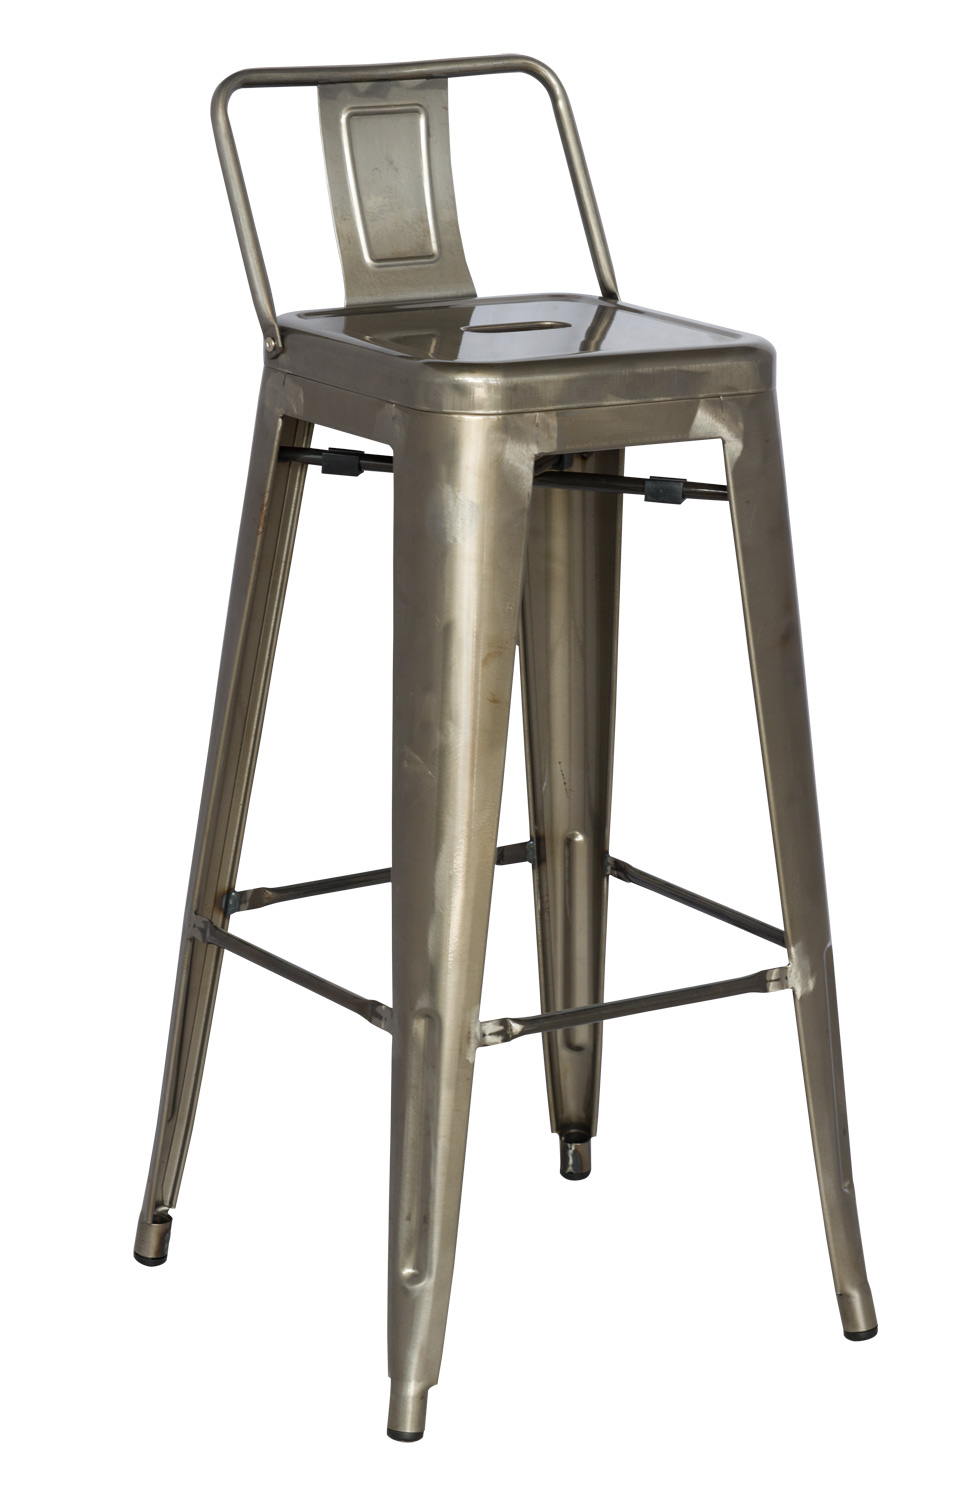 Chintaly Imports 8030 Cold Roll Steel Bar Stool - Gun Metal